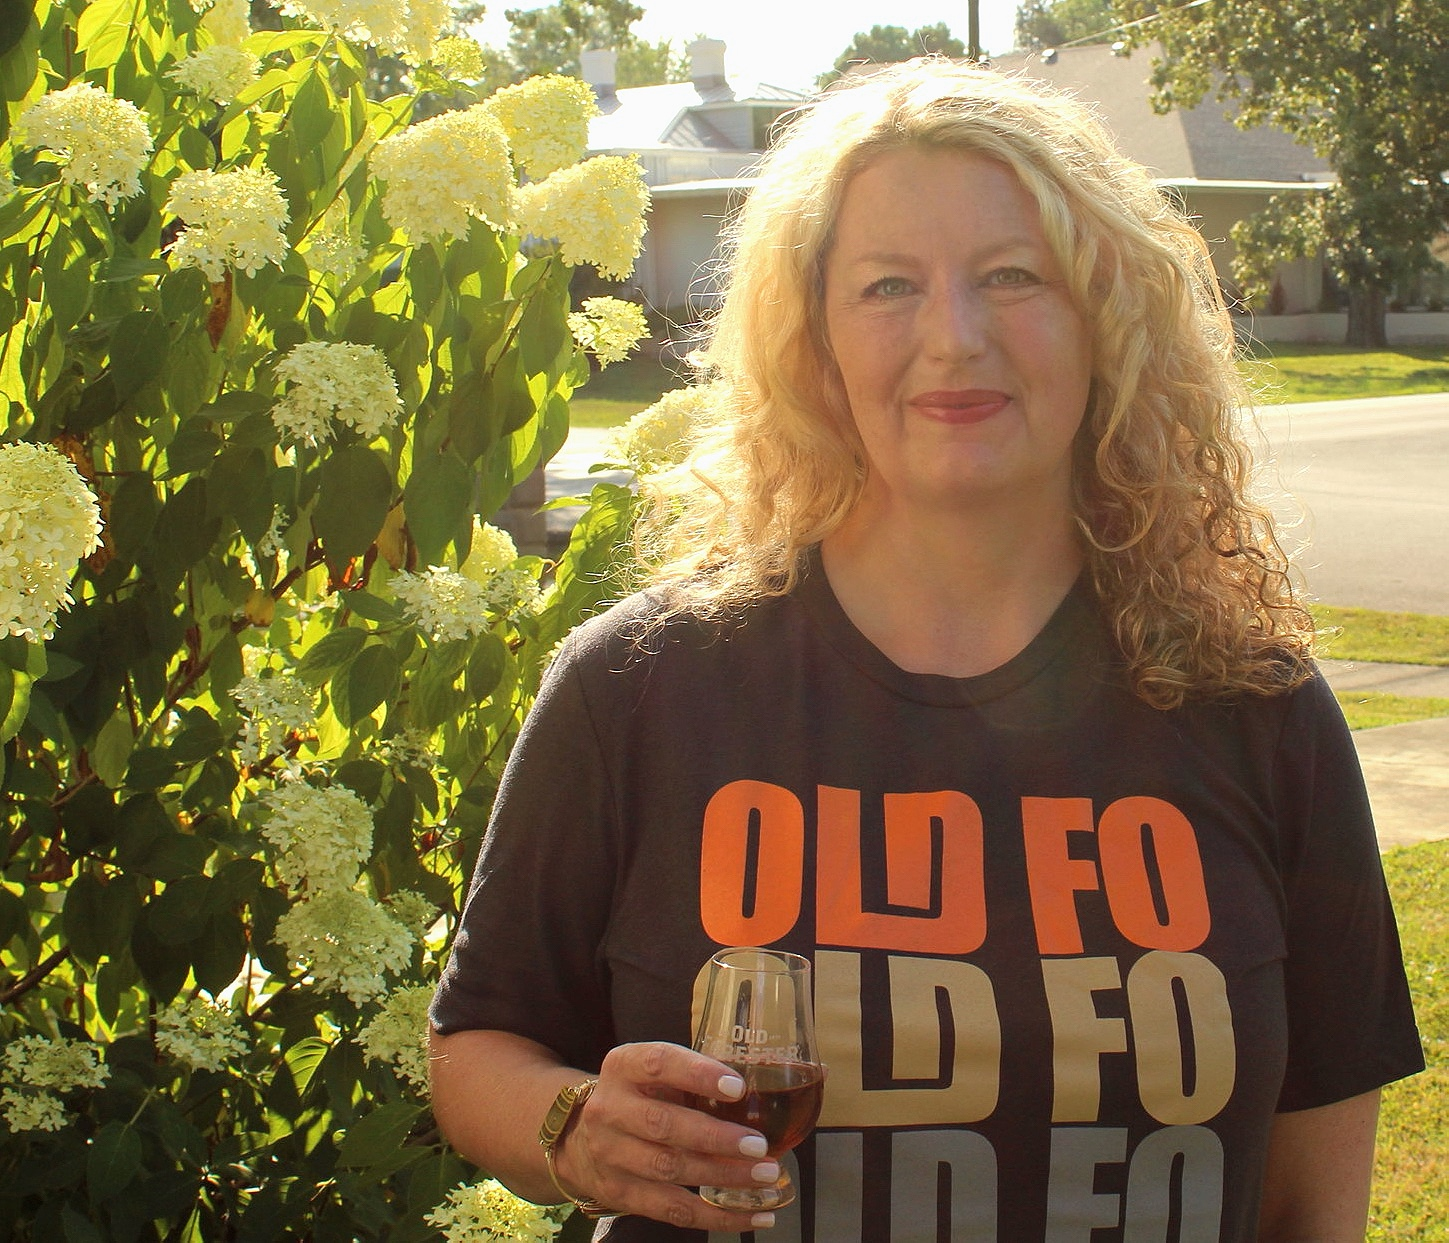 Old Forester graphic tee | Kentucky lifestyle blogger